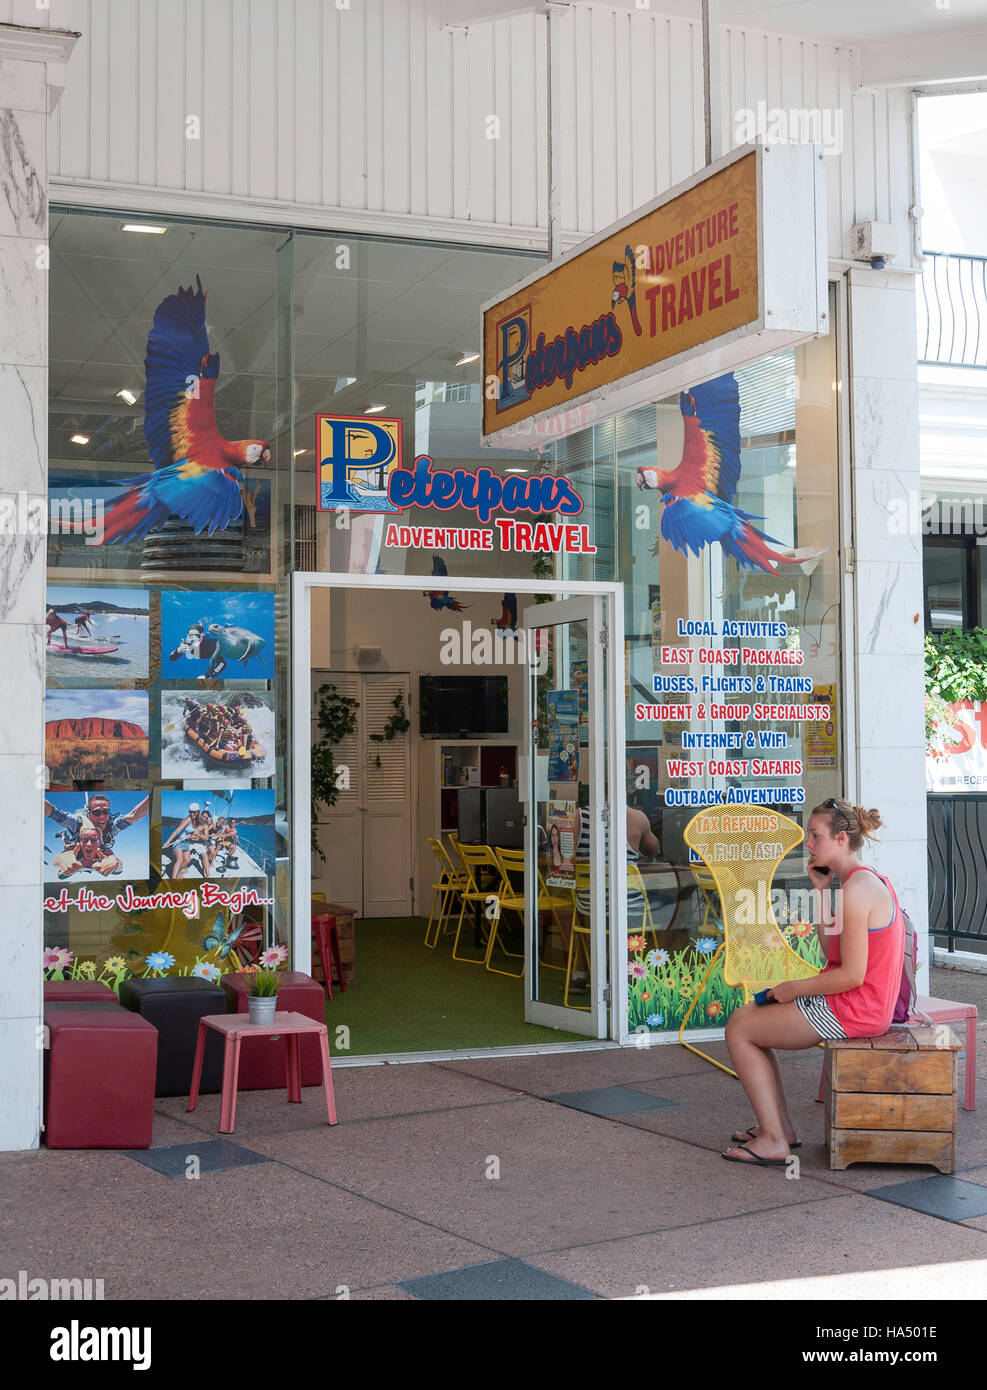 Peterpans Abenteuer Reisebüro, Orchid Avenue, Surfers Paradise, City of Gold Coast, Queensland, Australien Stockbild